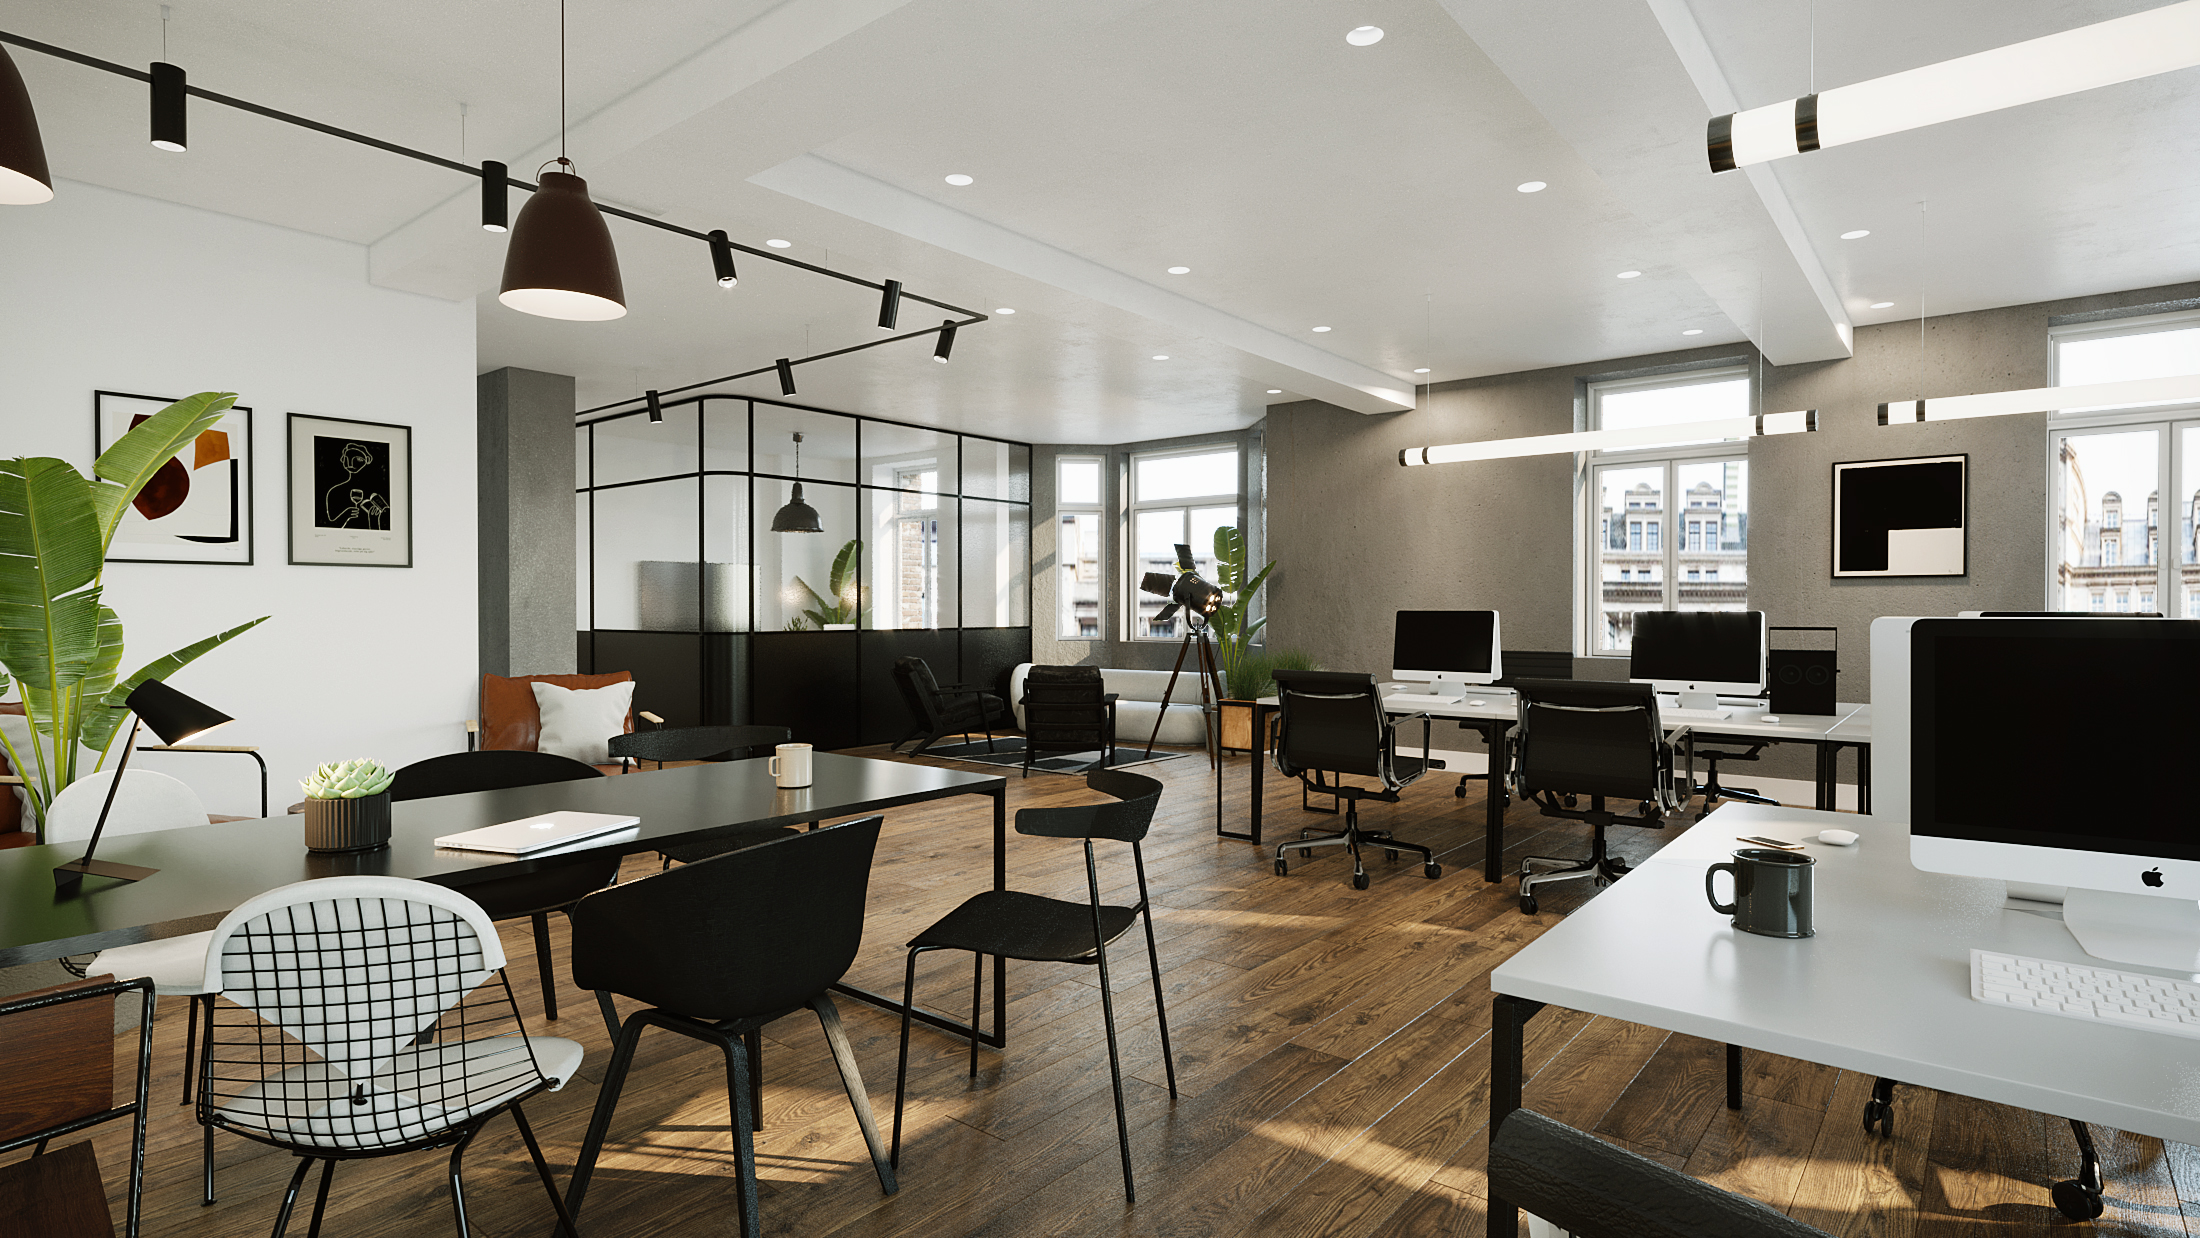 Islington workplace 3d CGI project. Designed by The Whitepaper